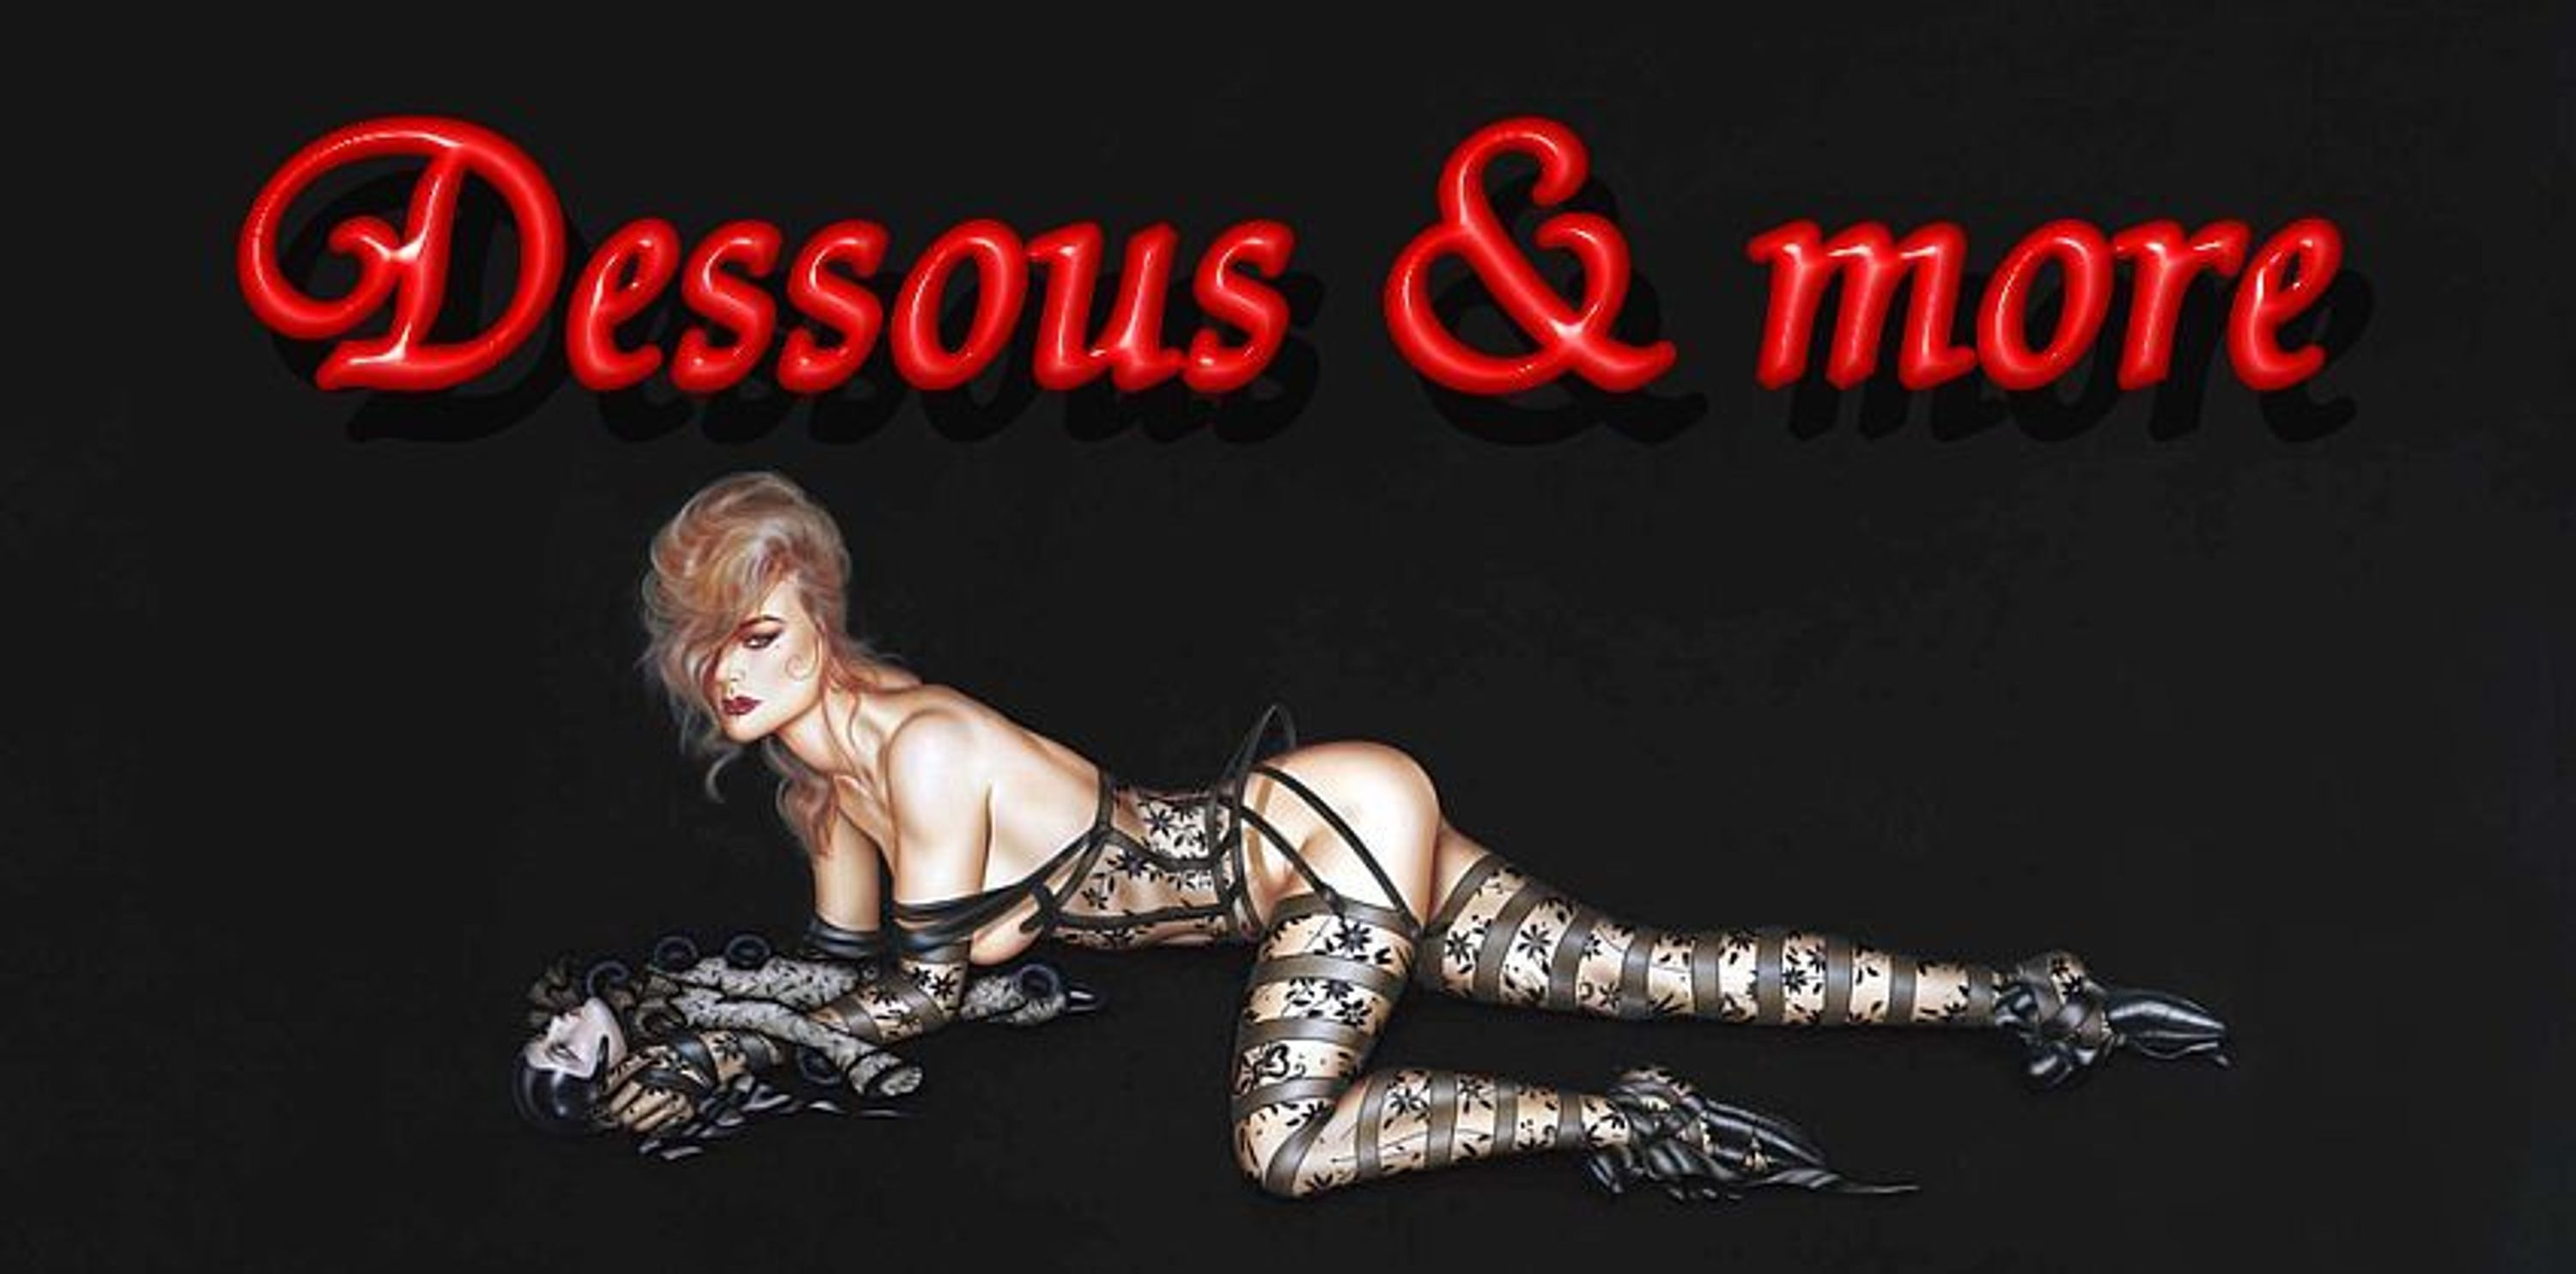 Dessous and more